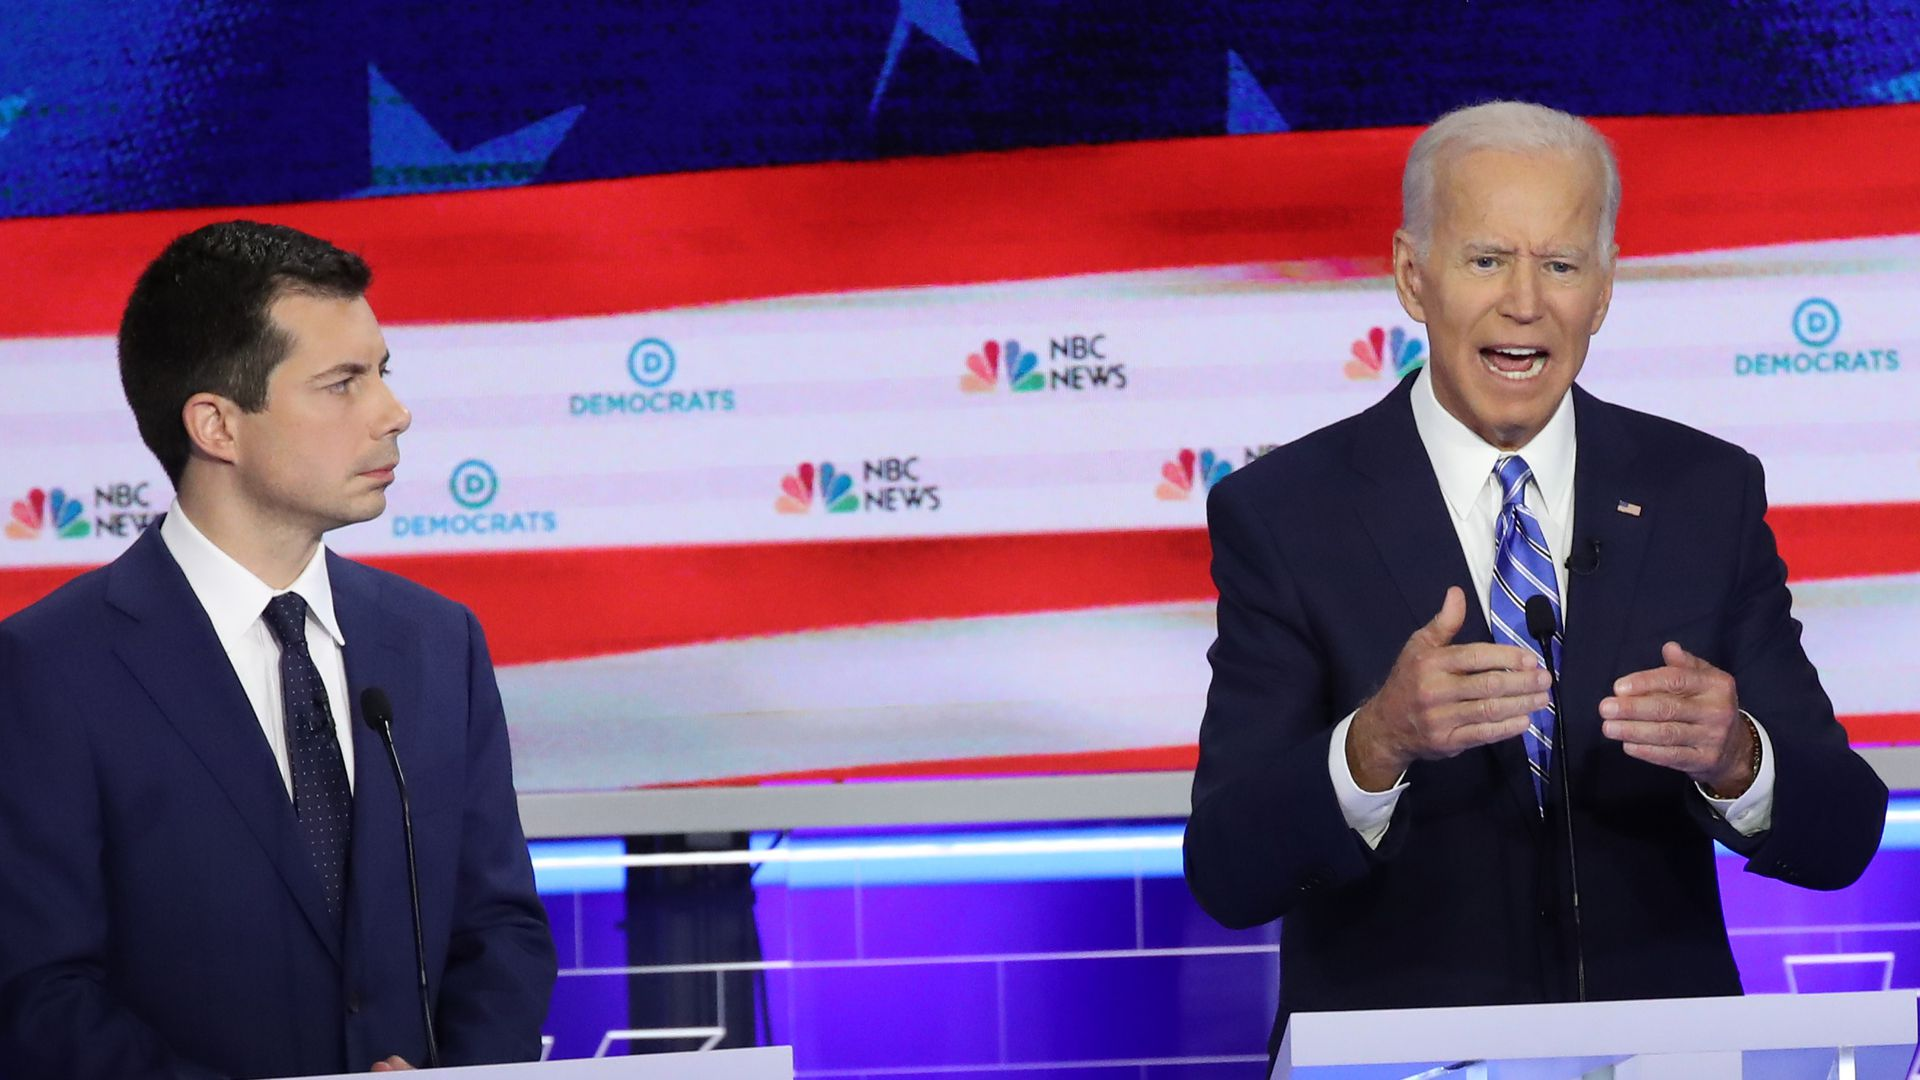 Democratic presidential candidates (L-R) South Bend, Indiana Mayor Pete Buttigieg, former Vice President Joe Biden  in the first Democratic presidential debate on June 27, 2019 in Miami, Florida.